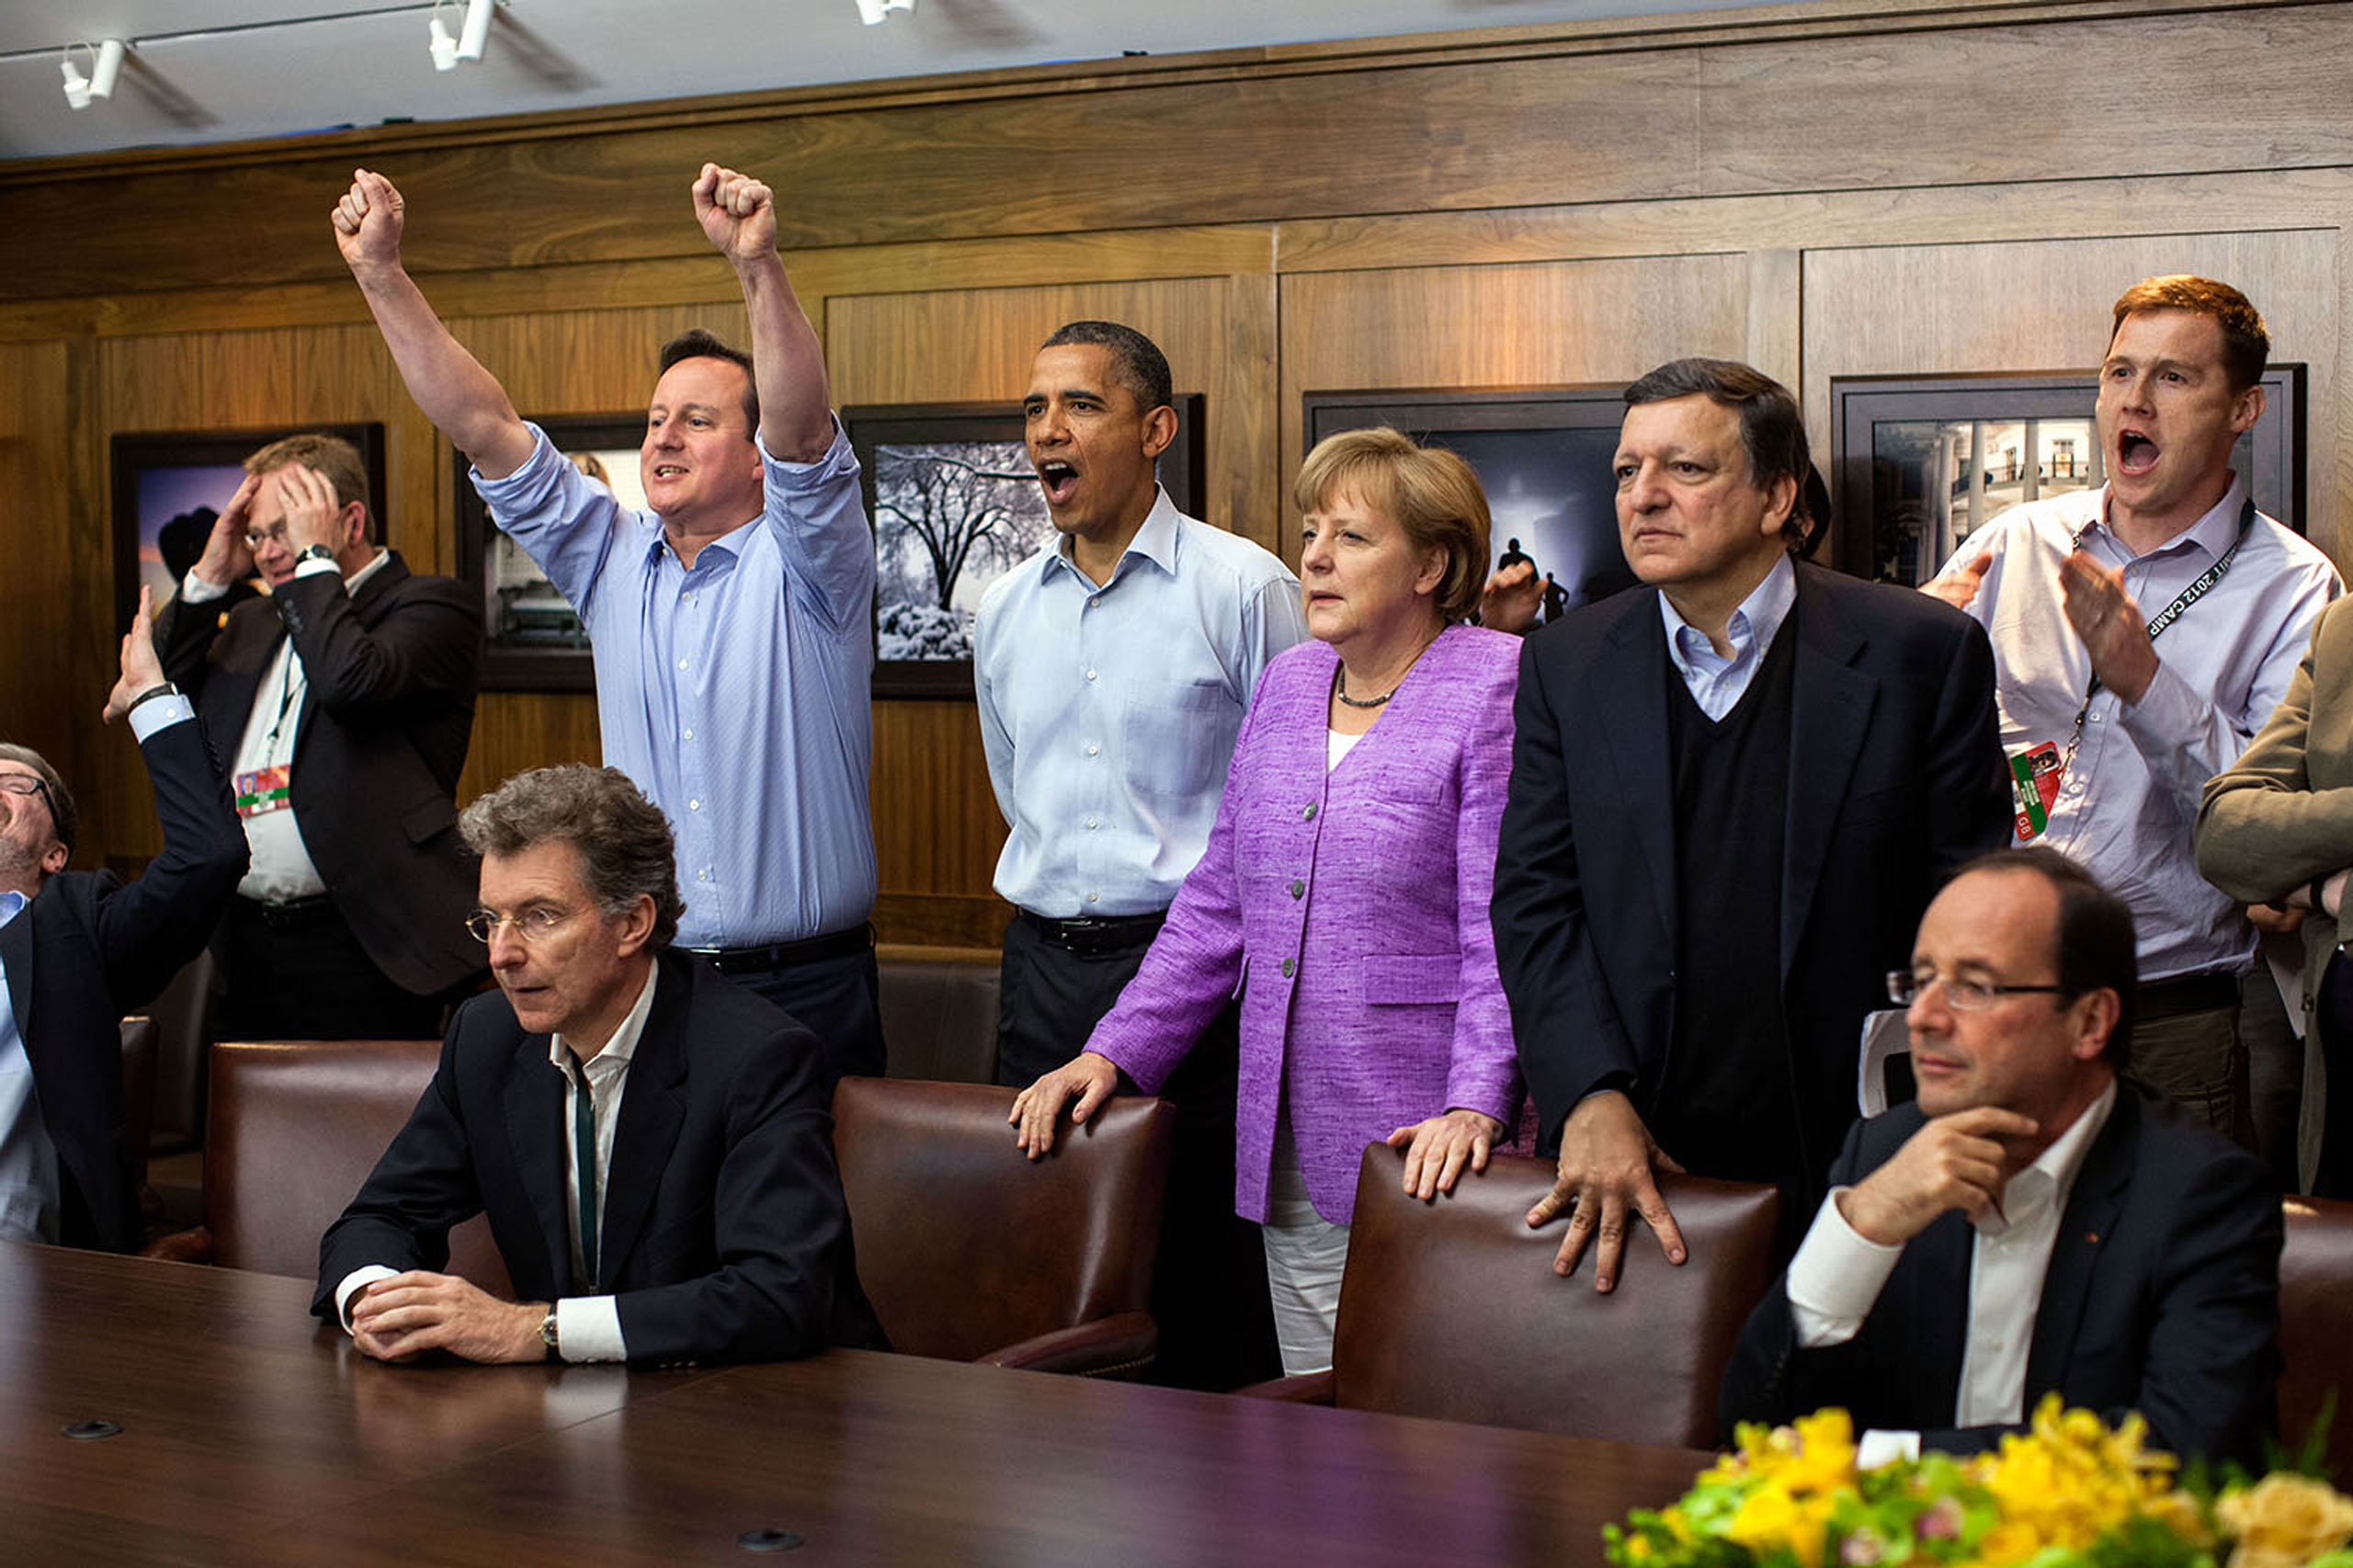 At Camp David for the G8 Summit, European leaders took a break to watch the overtime shootout of the Chelsea vs. Bayern Munich Champions League final. Prime Minister David Cameron of the United Kingdom, the President, Chancellor Angela Merkel of Germany, José Manuel Barroso, President of the European Commission, French President François Hollande react during the winning goal,                                May 19, 2012.